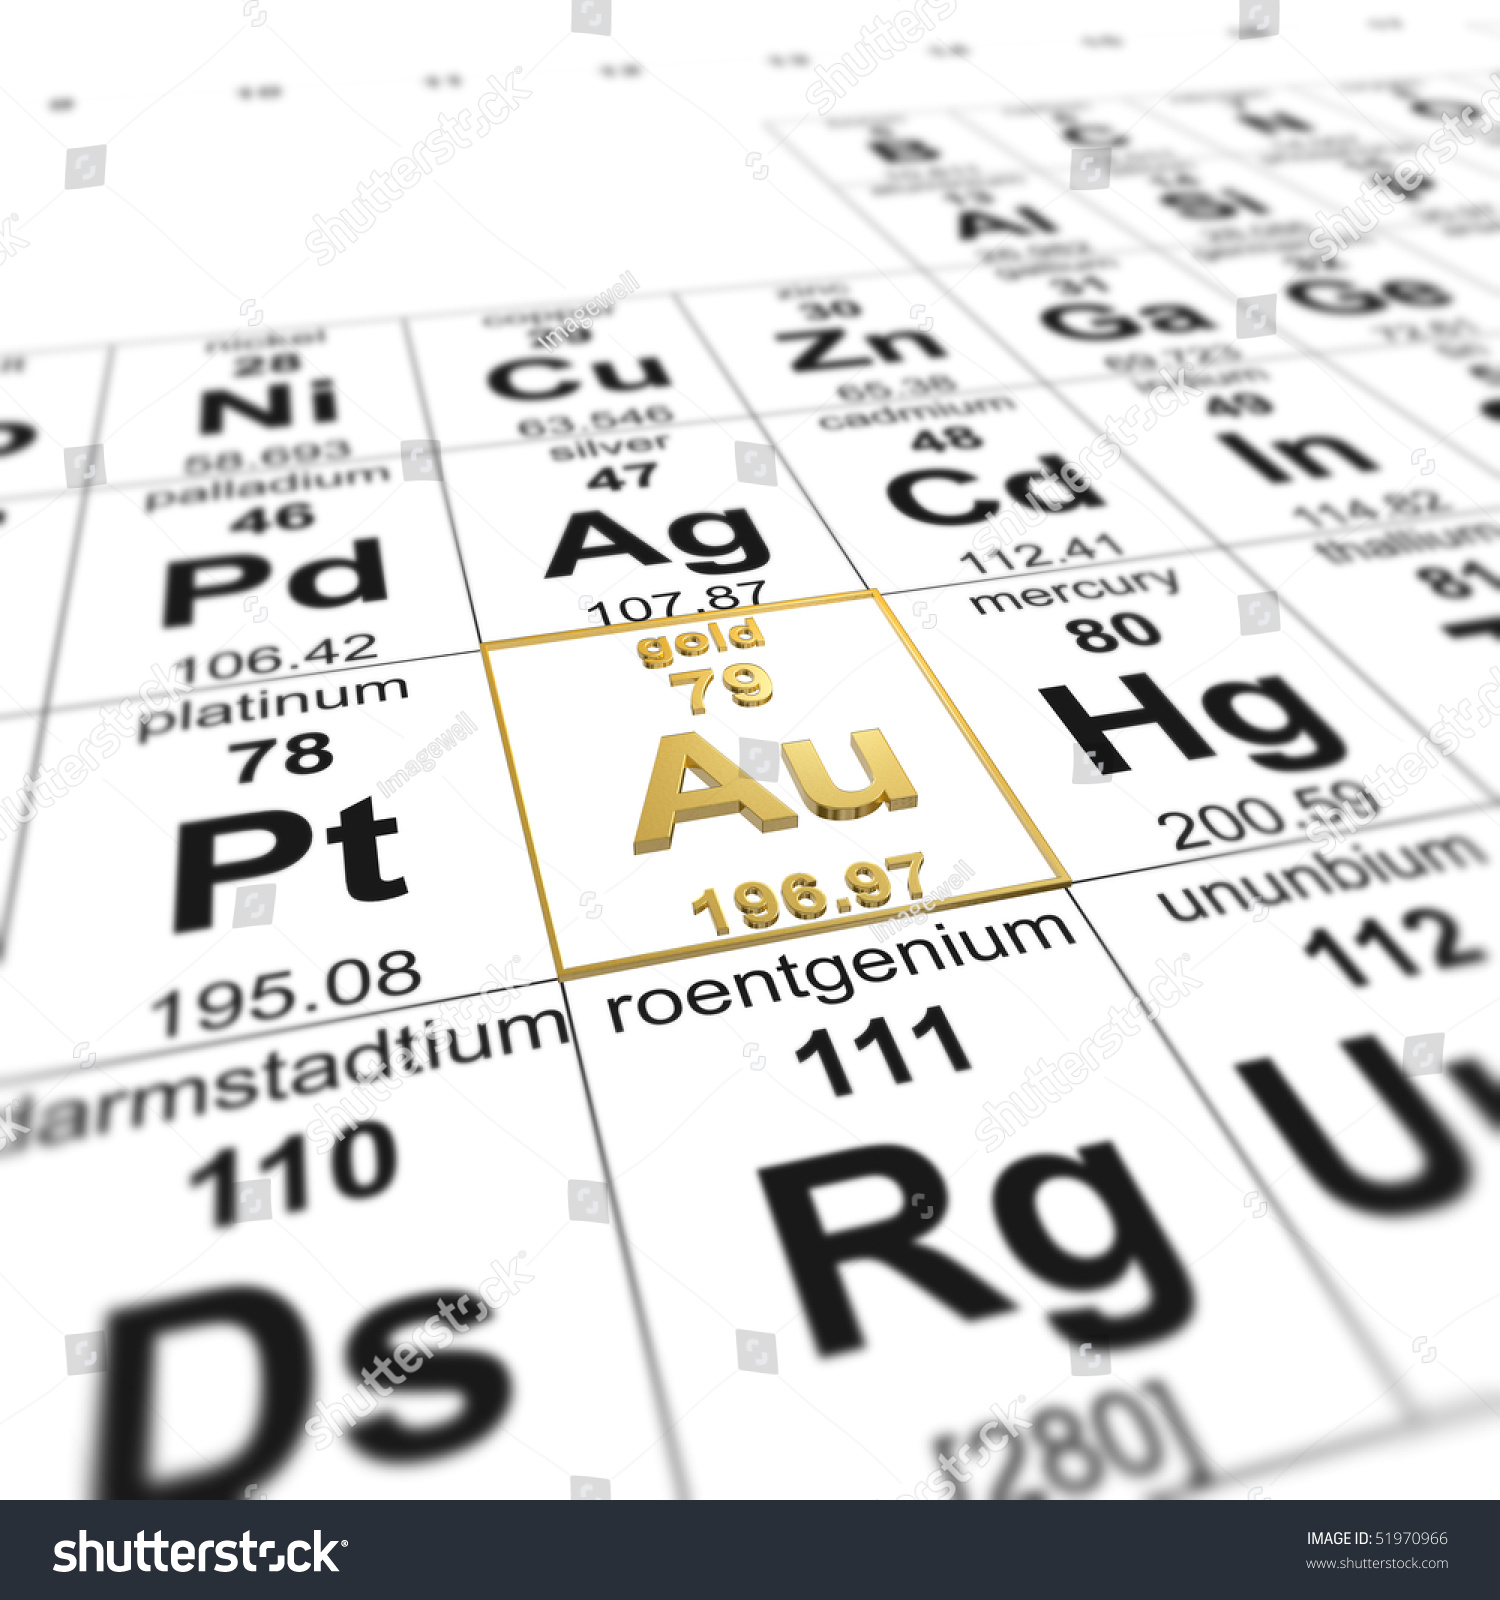 Gold periodic table image collections periodic table images gold period table images periodic table images gold period table gallery periodic table images gold periodic gamestrikefo Image collections